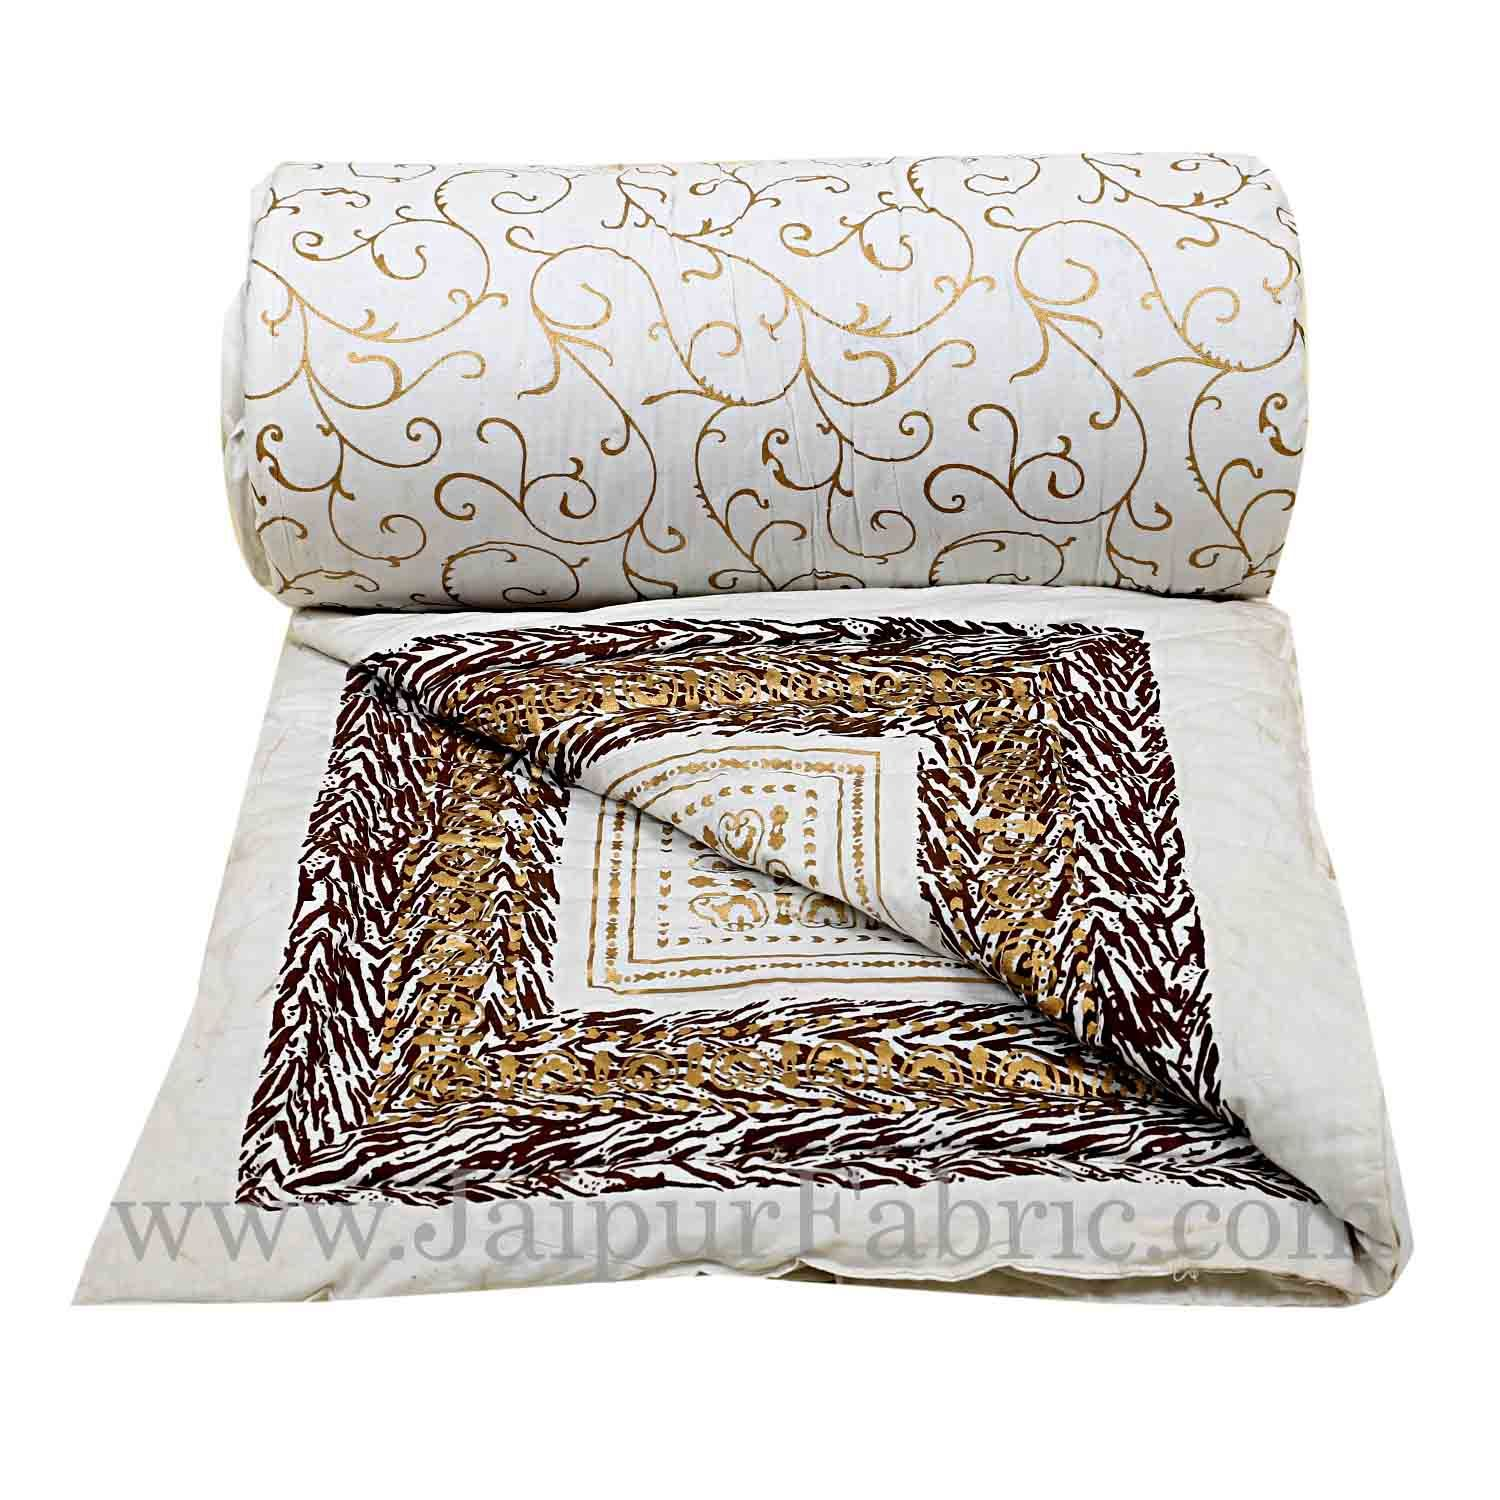 Jaipuri Printed Double Bed Razai Golden  Coffee White base with Jall pattern